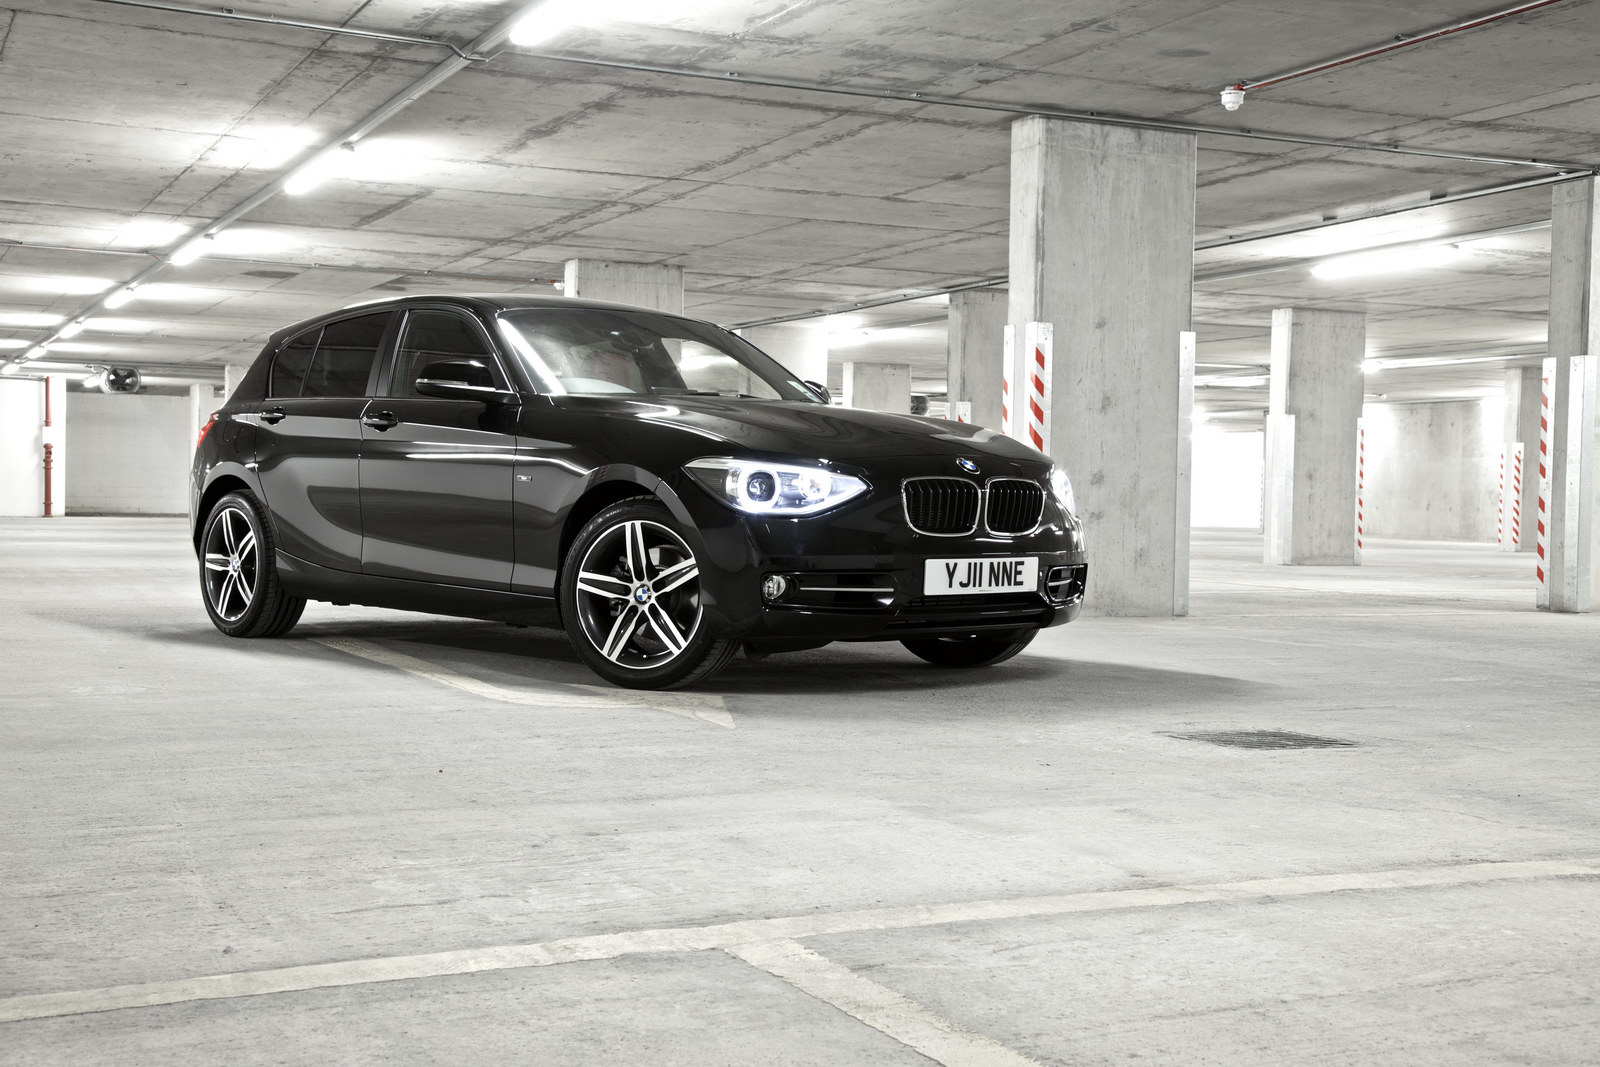 2011 BMW 1 Series 4 BMW reveals pricing of the 2011 latest 1 Series Hatch in UK